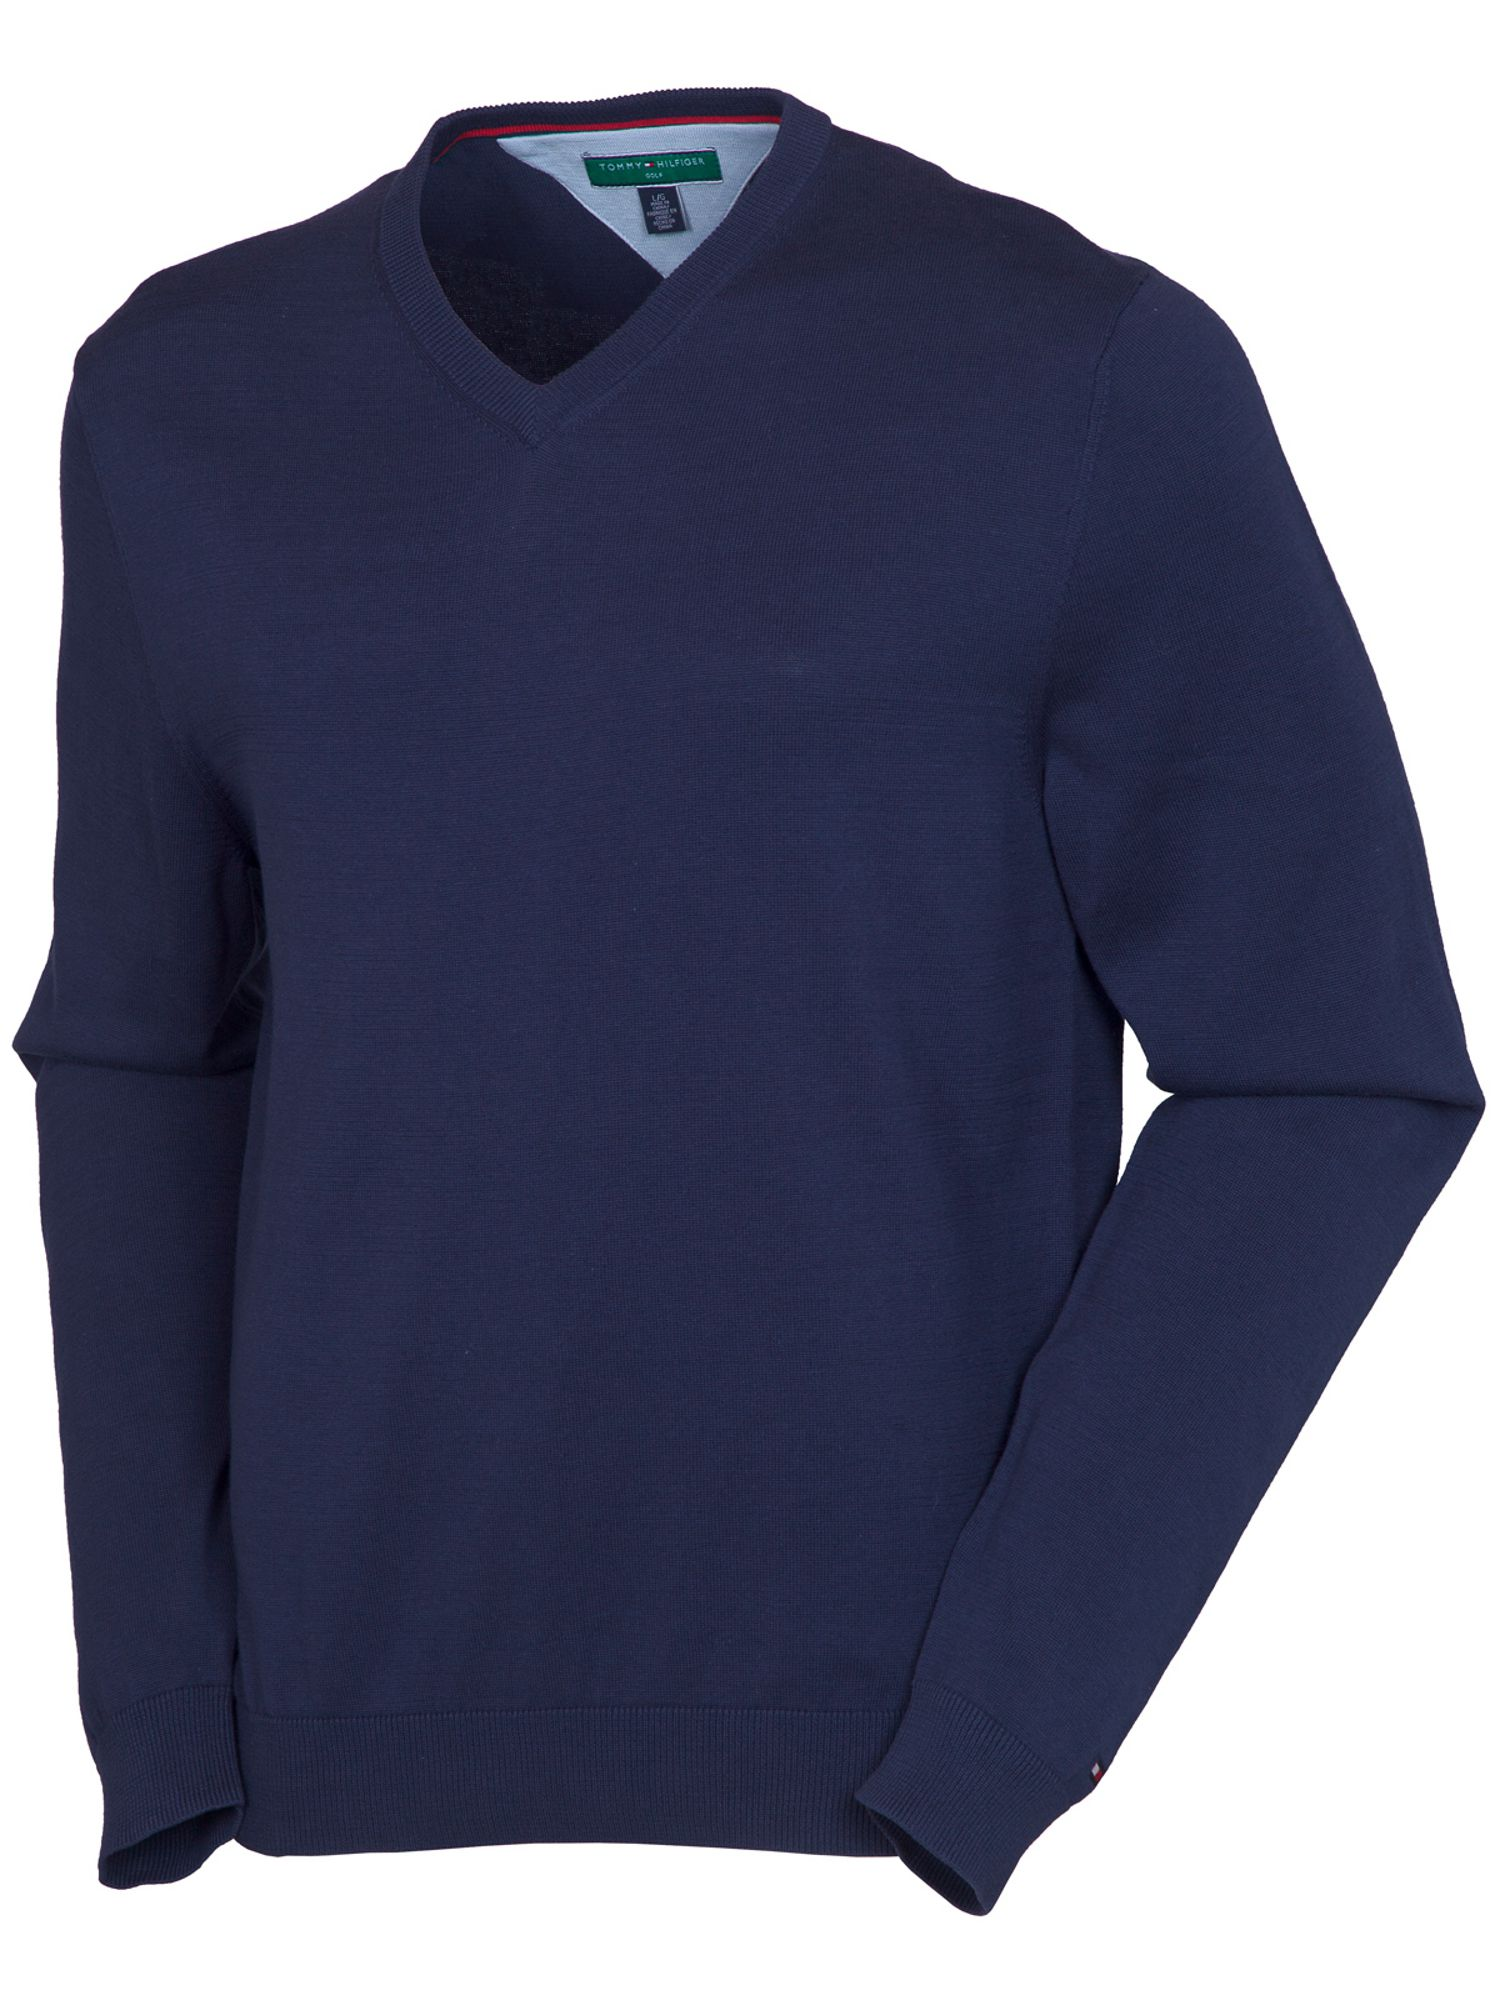 Preston v neck sweater